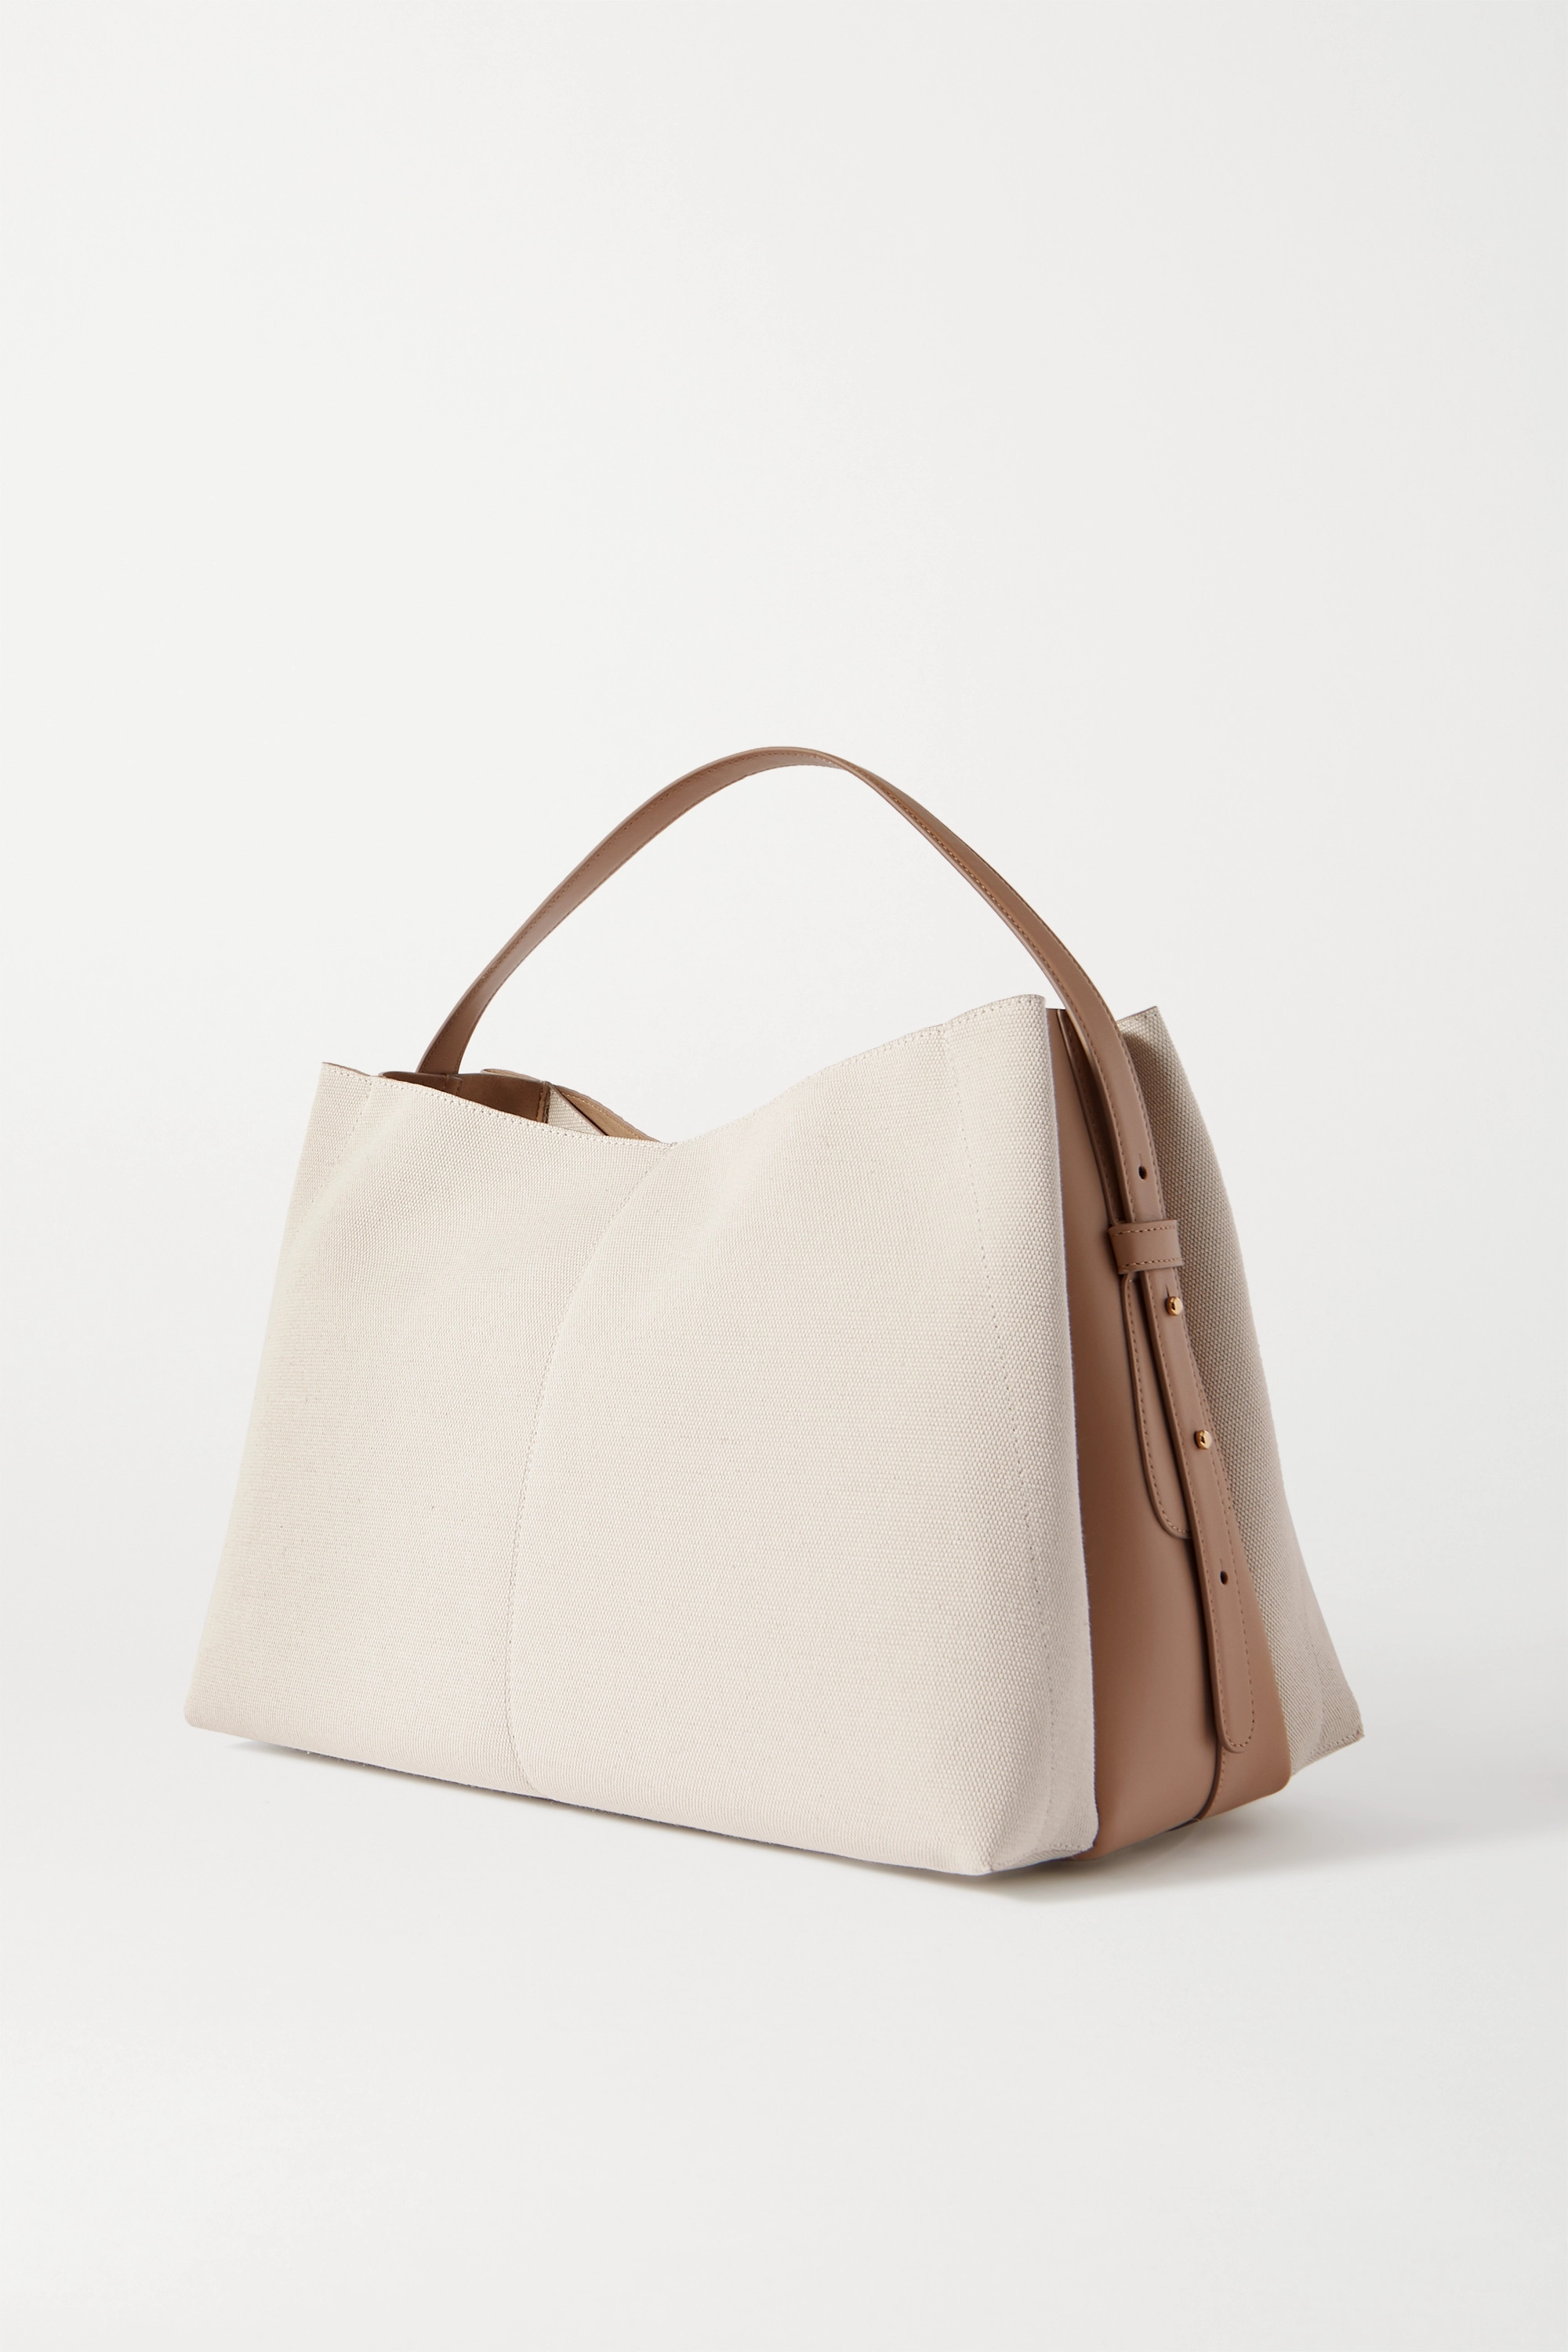 Wandler Ava large leather-trimmed canvas tote